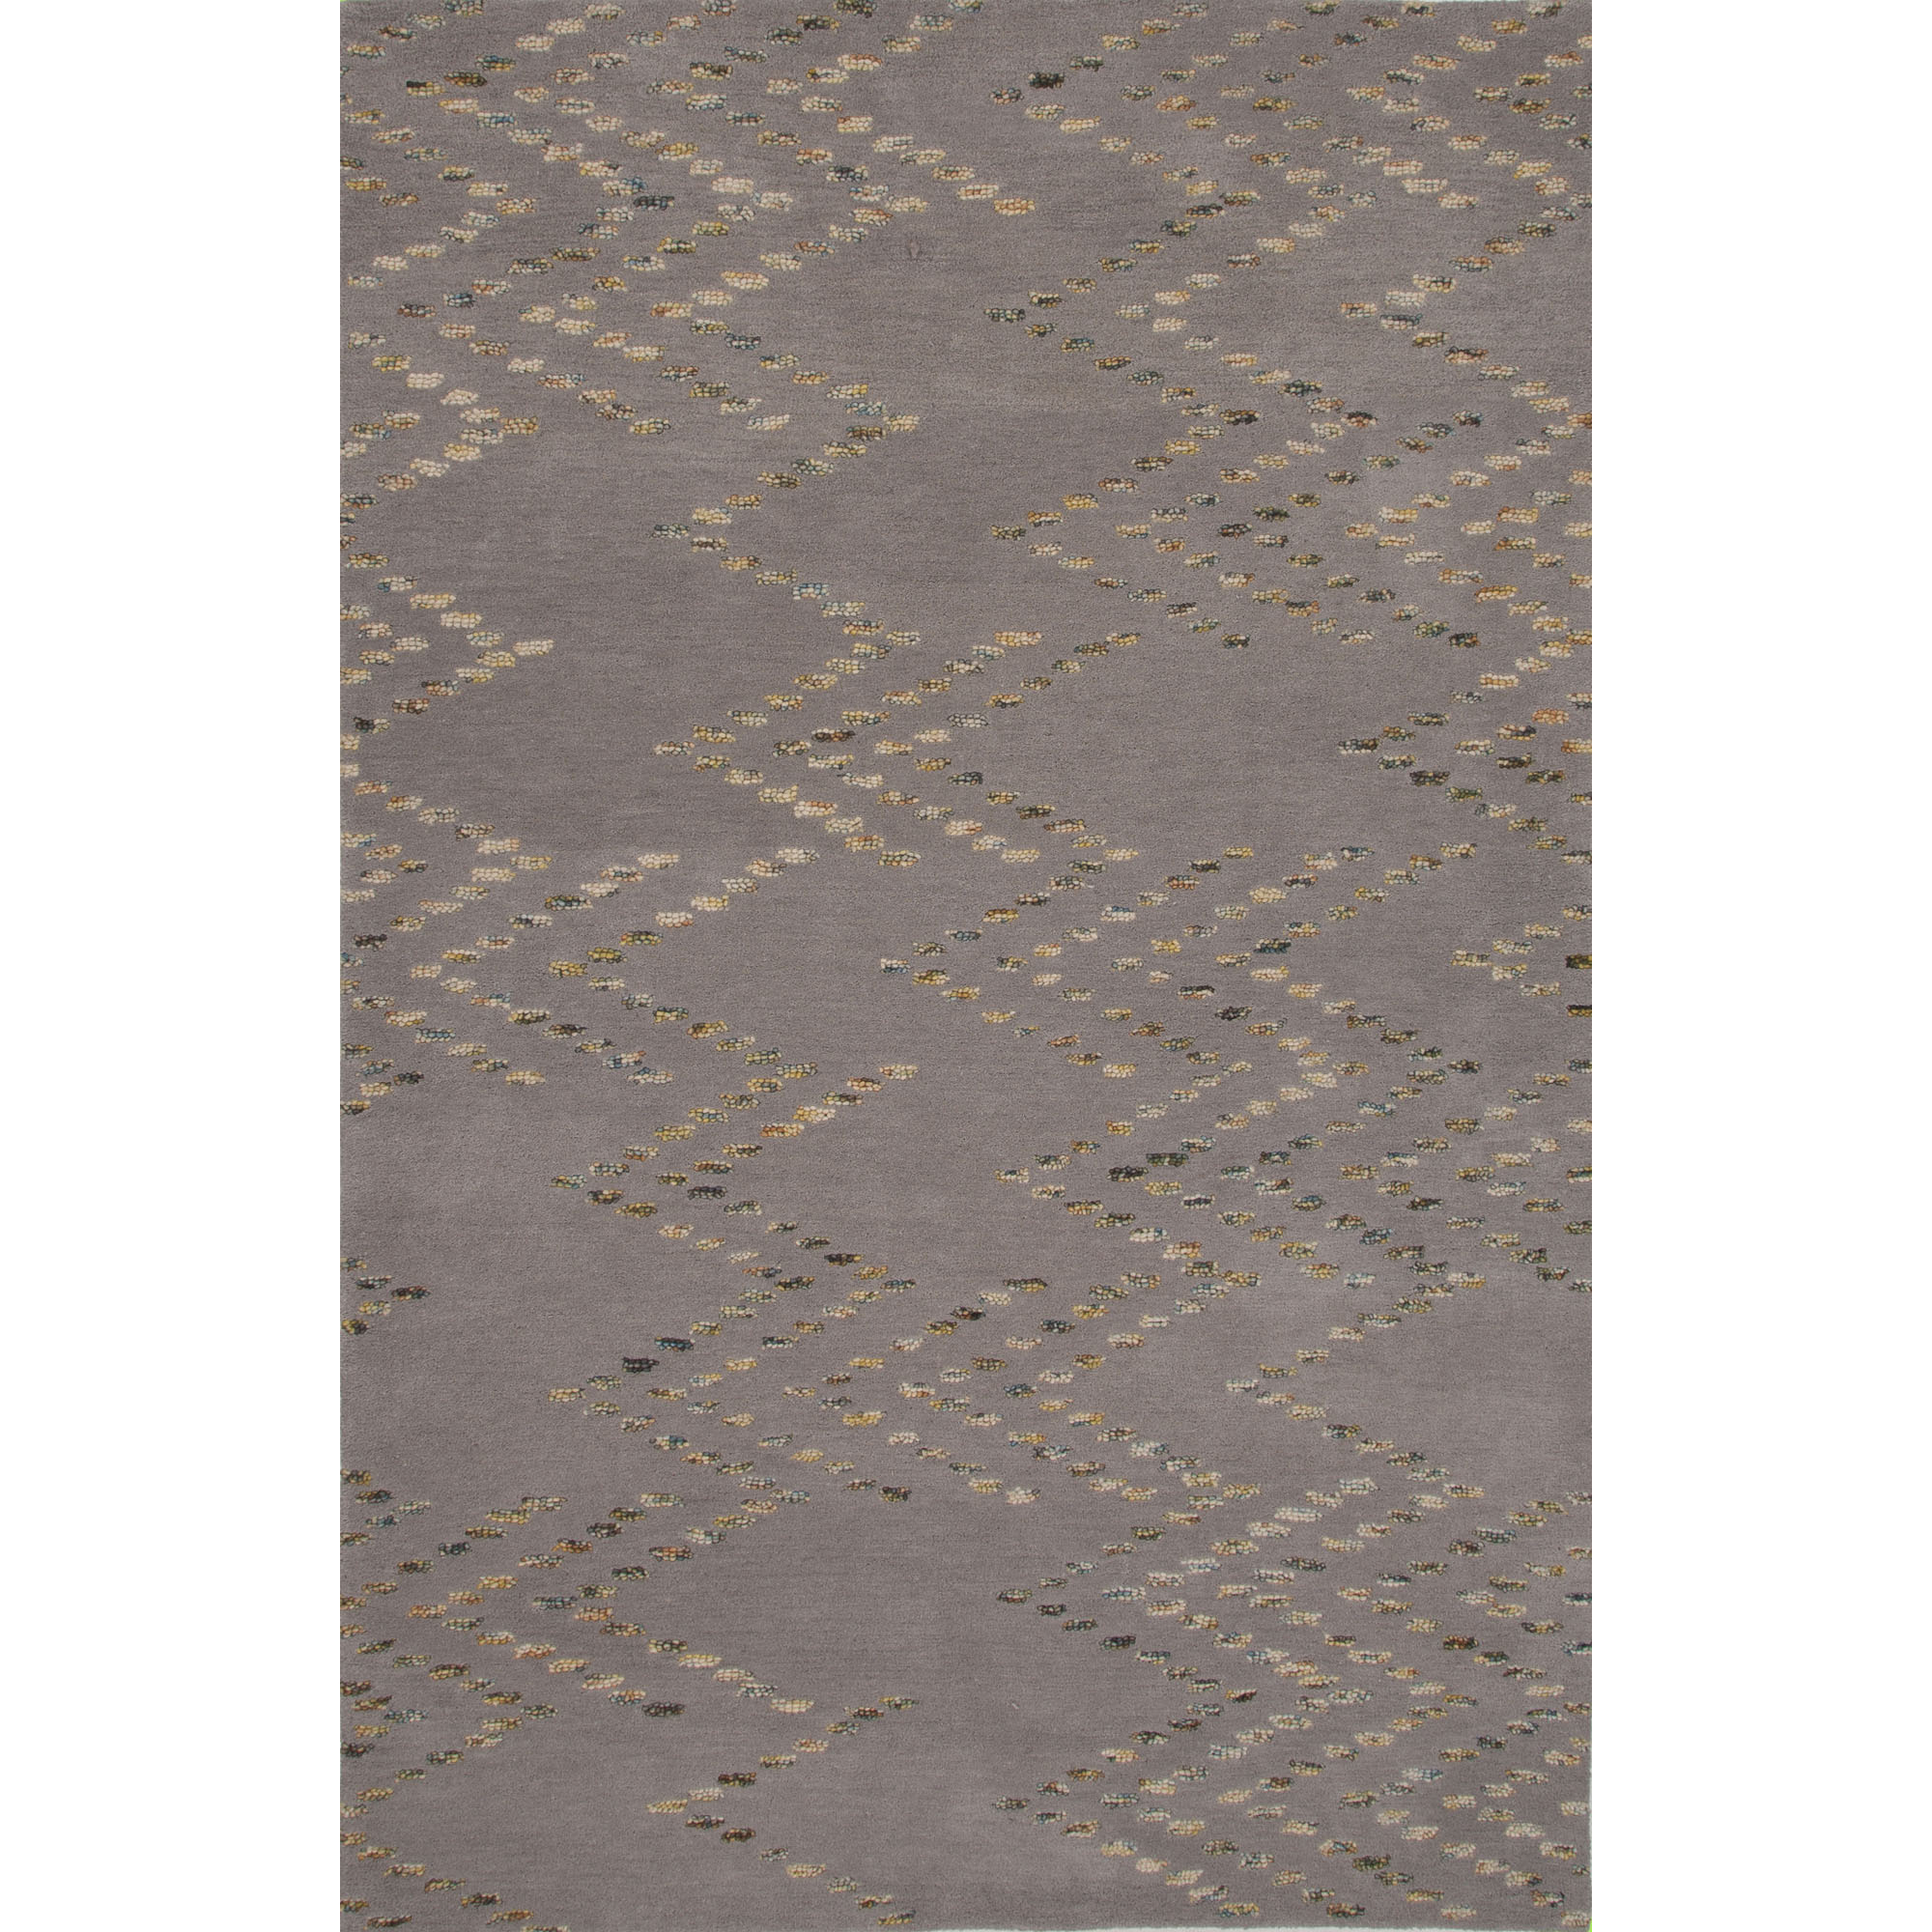 JAIPUR Rugs Traditions Made Modern Tufted 8 x 11 Rug - Item Number: RUG122217